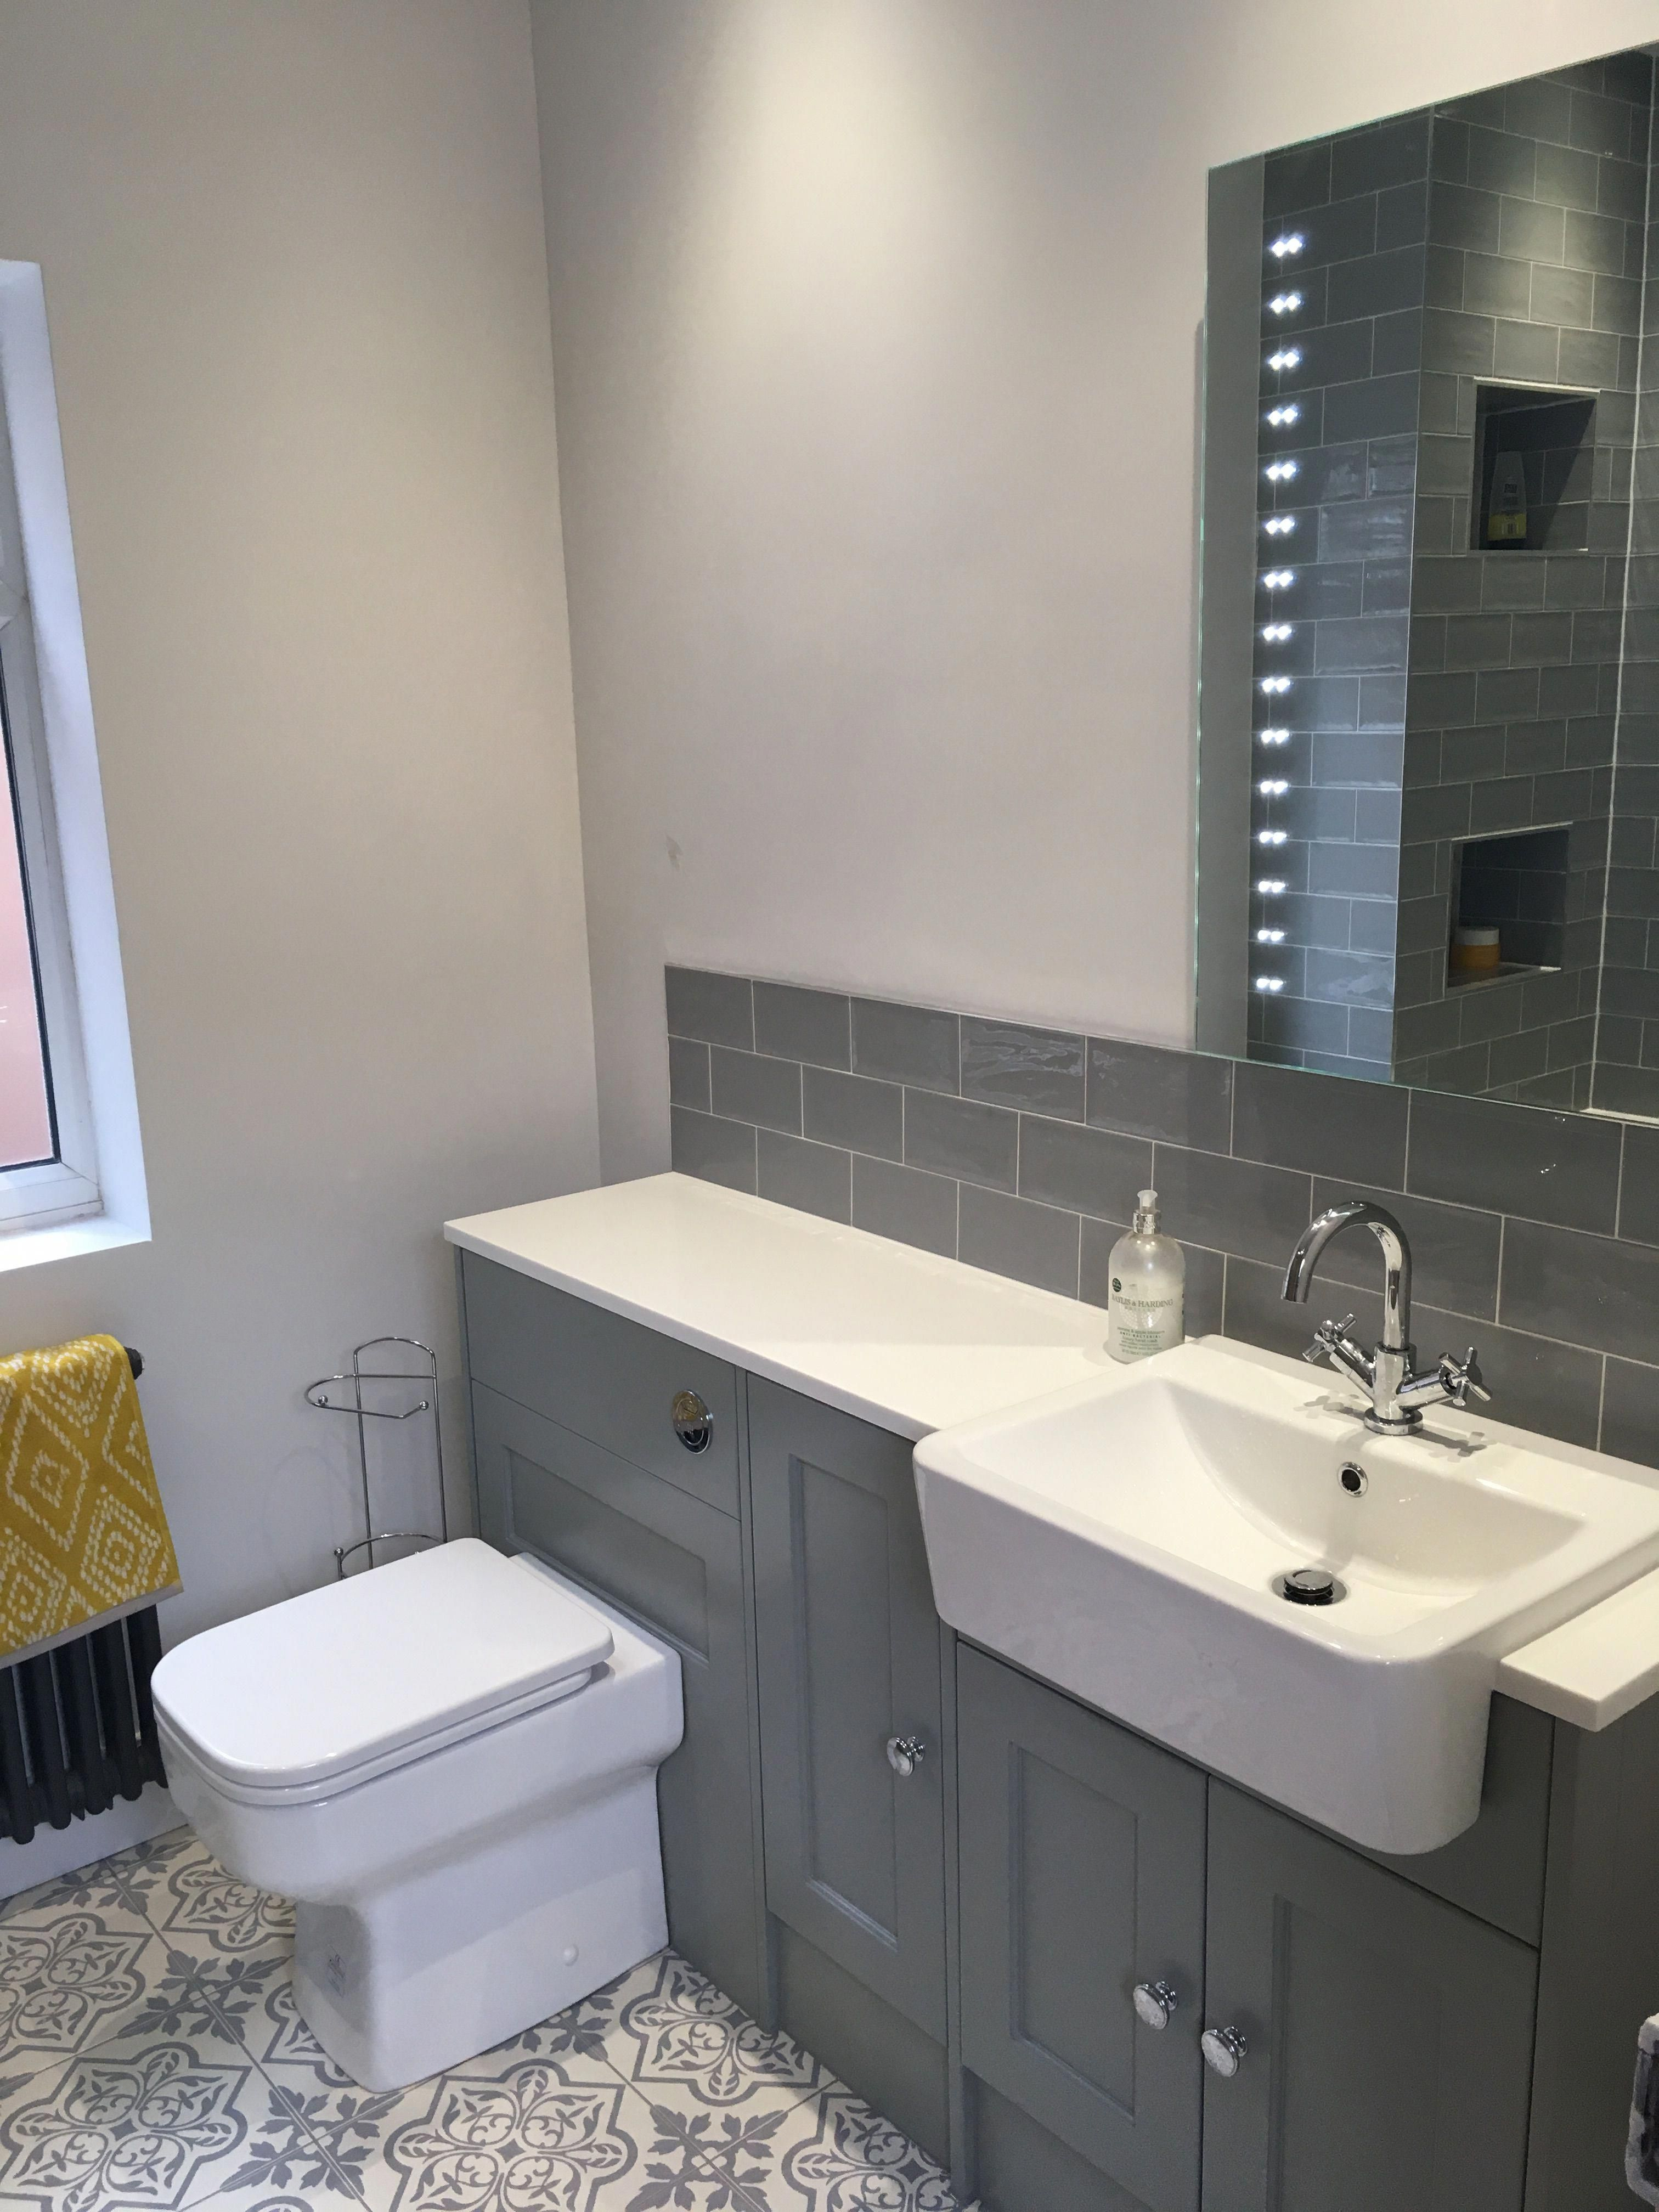 The Finished Article Roper Rhodes Burford Furniture In Pebble Grey With Geo Basin And Toilet Original Grey Bathroom Furniture Fitted Bathroom Bathroom Design